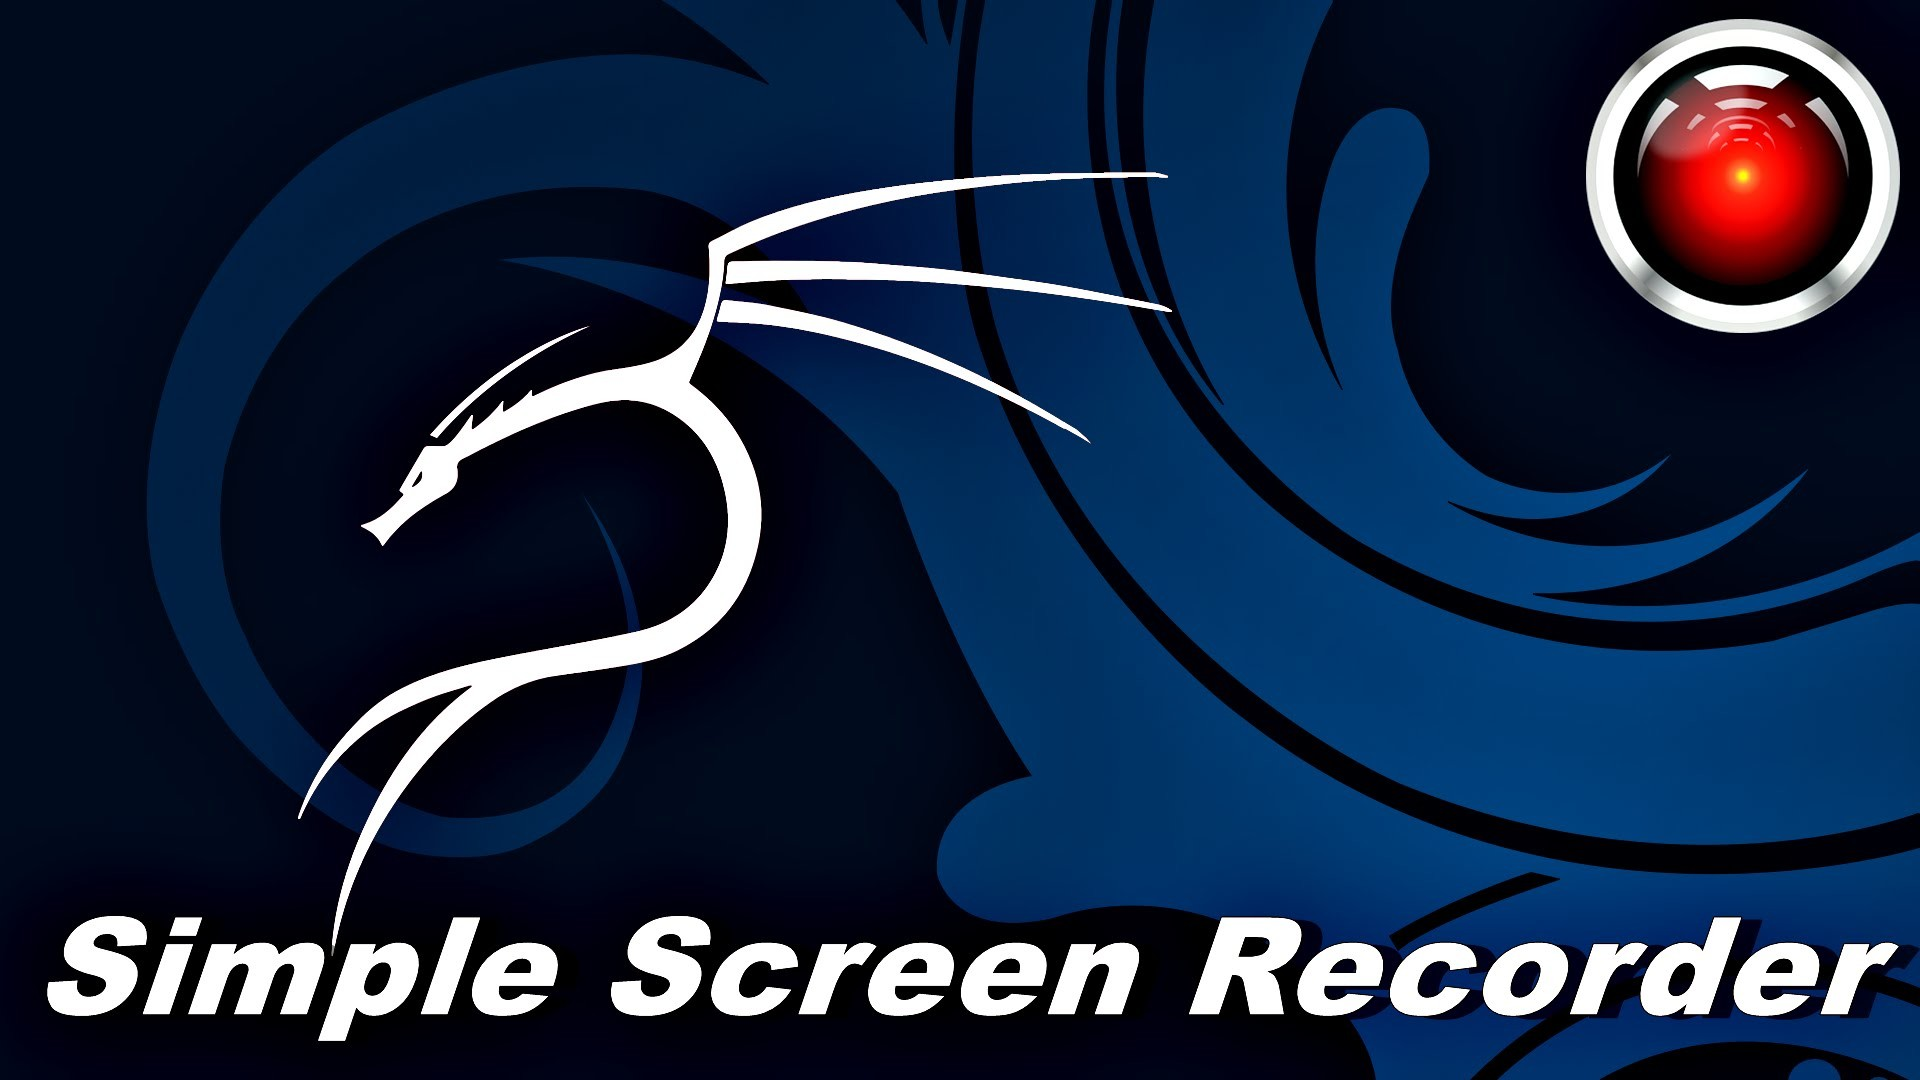 How to Record mp4 on kali Linux 2.0 with Simple Screen Recorder